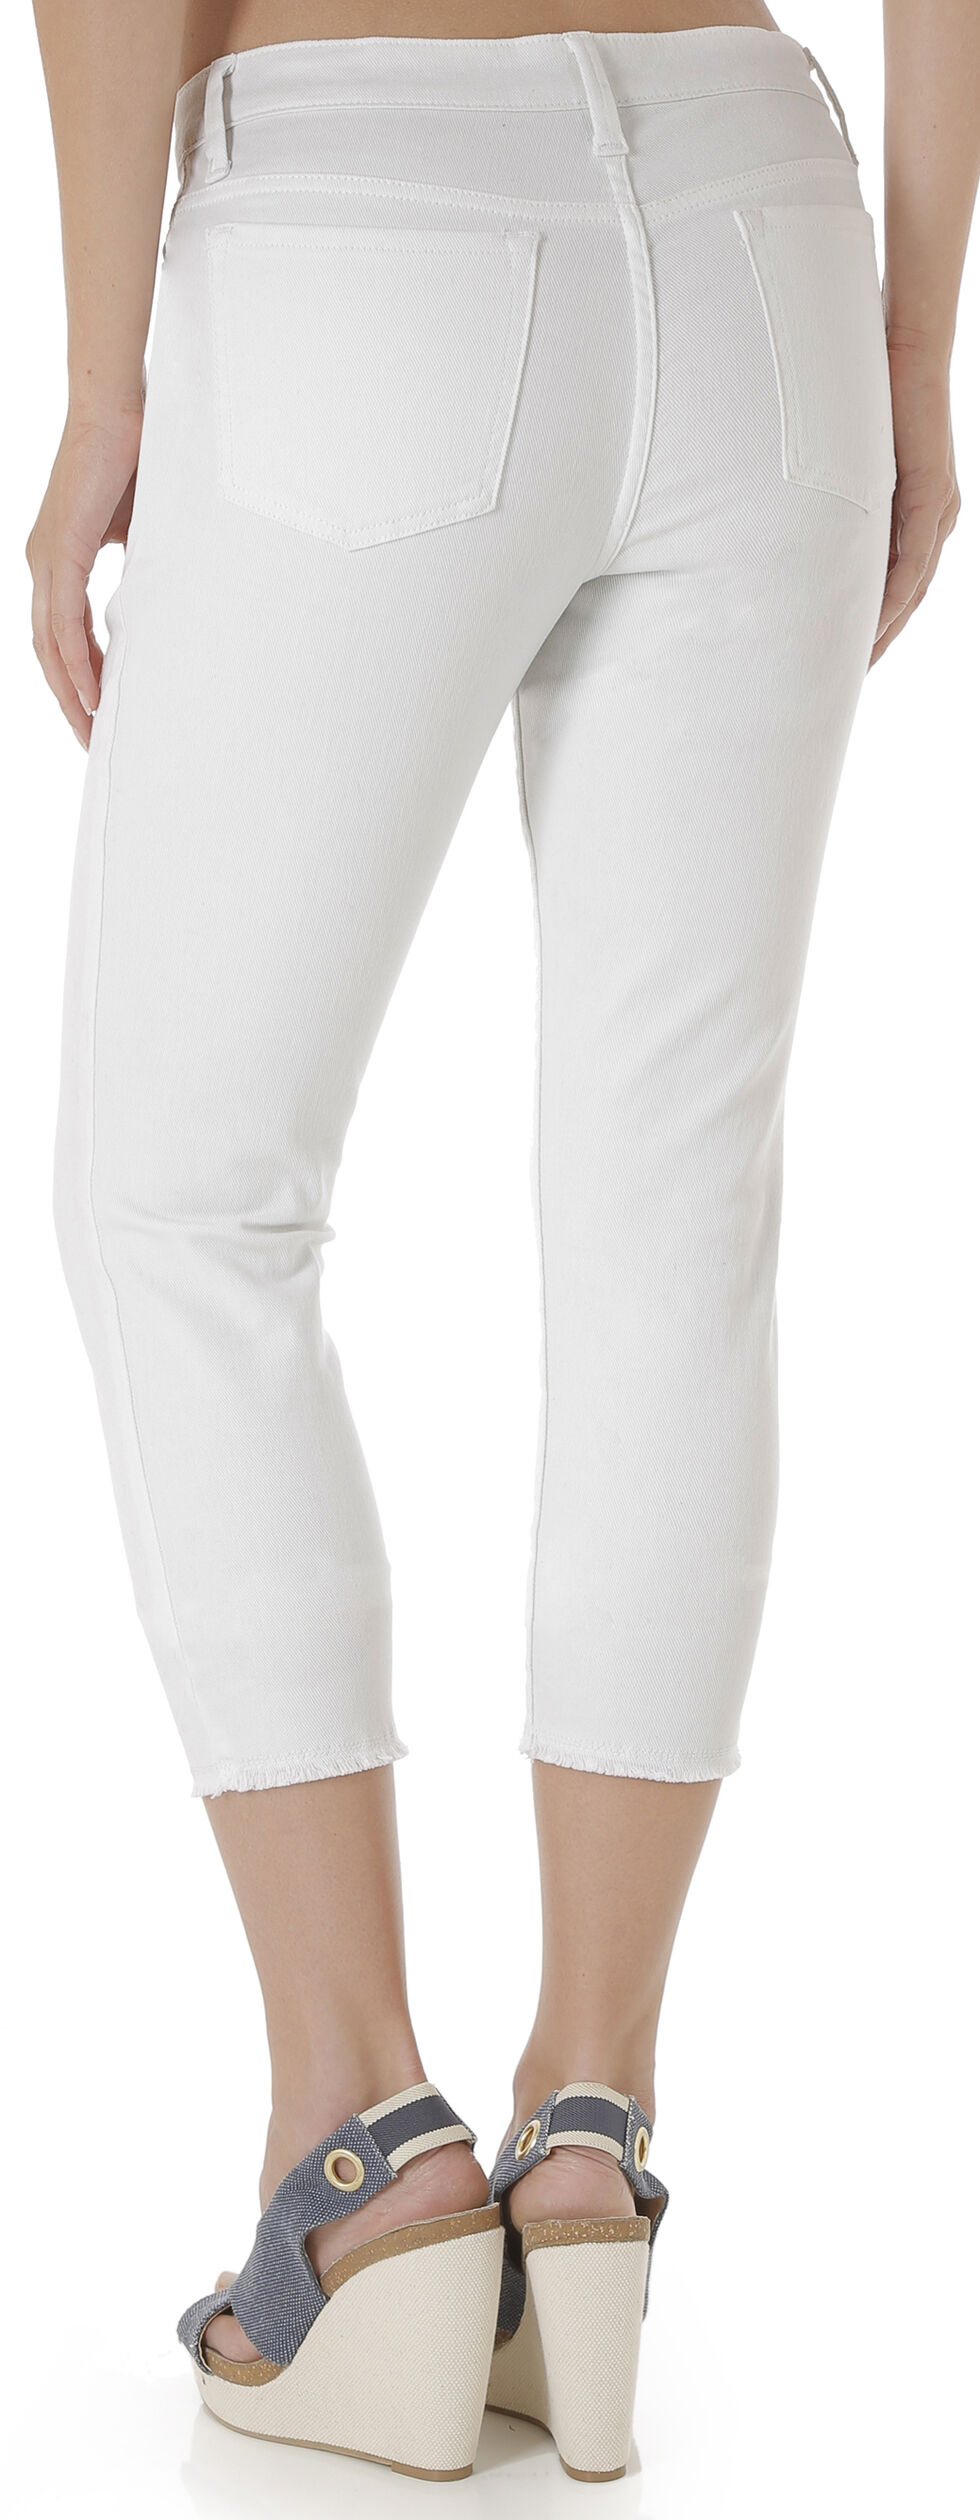 Wrangler Women's Retro White Cropped Jeans, White, hi-res